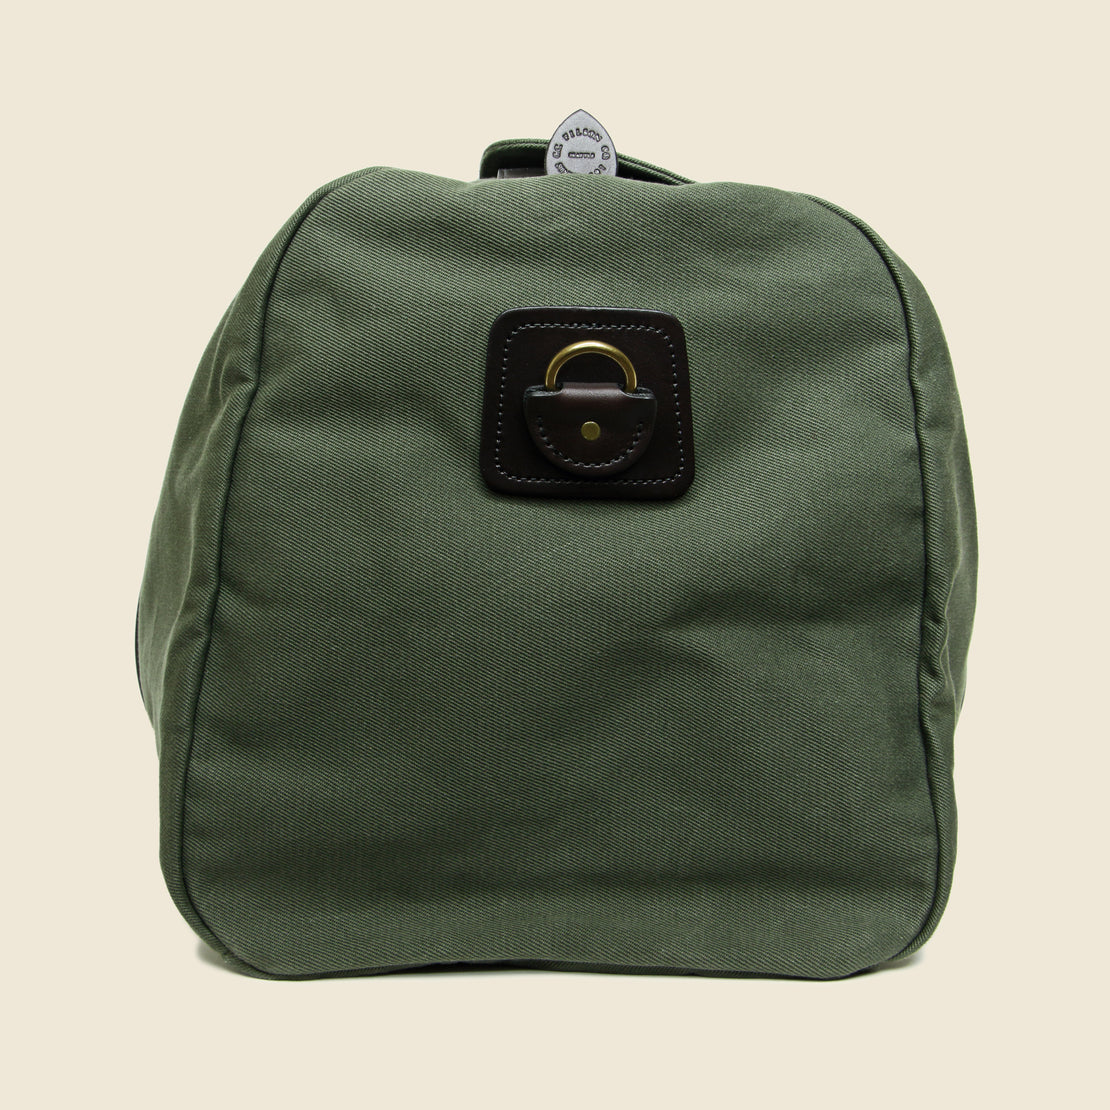 Large Duffle Bag - Otter Green